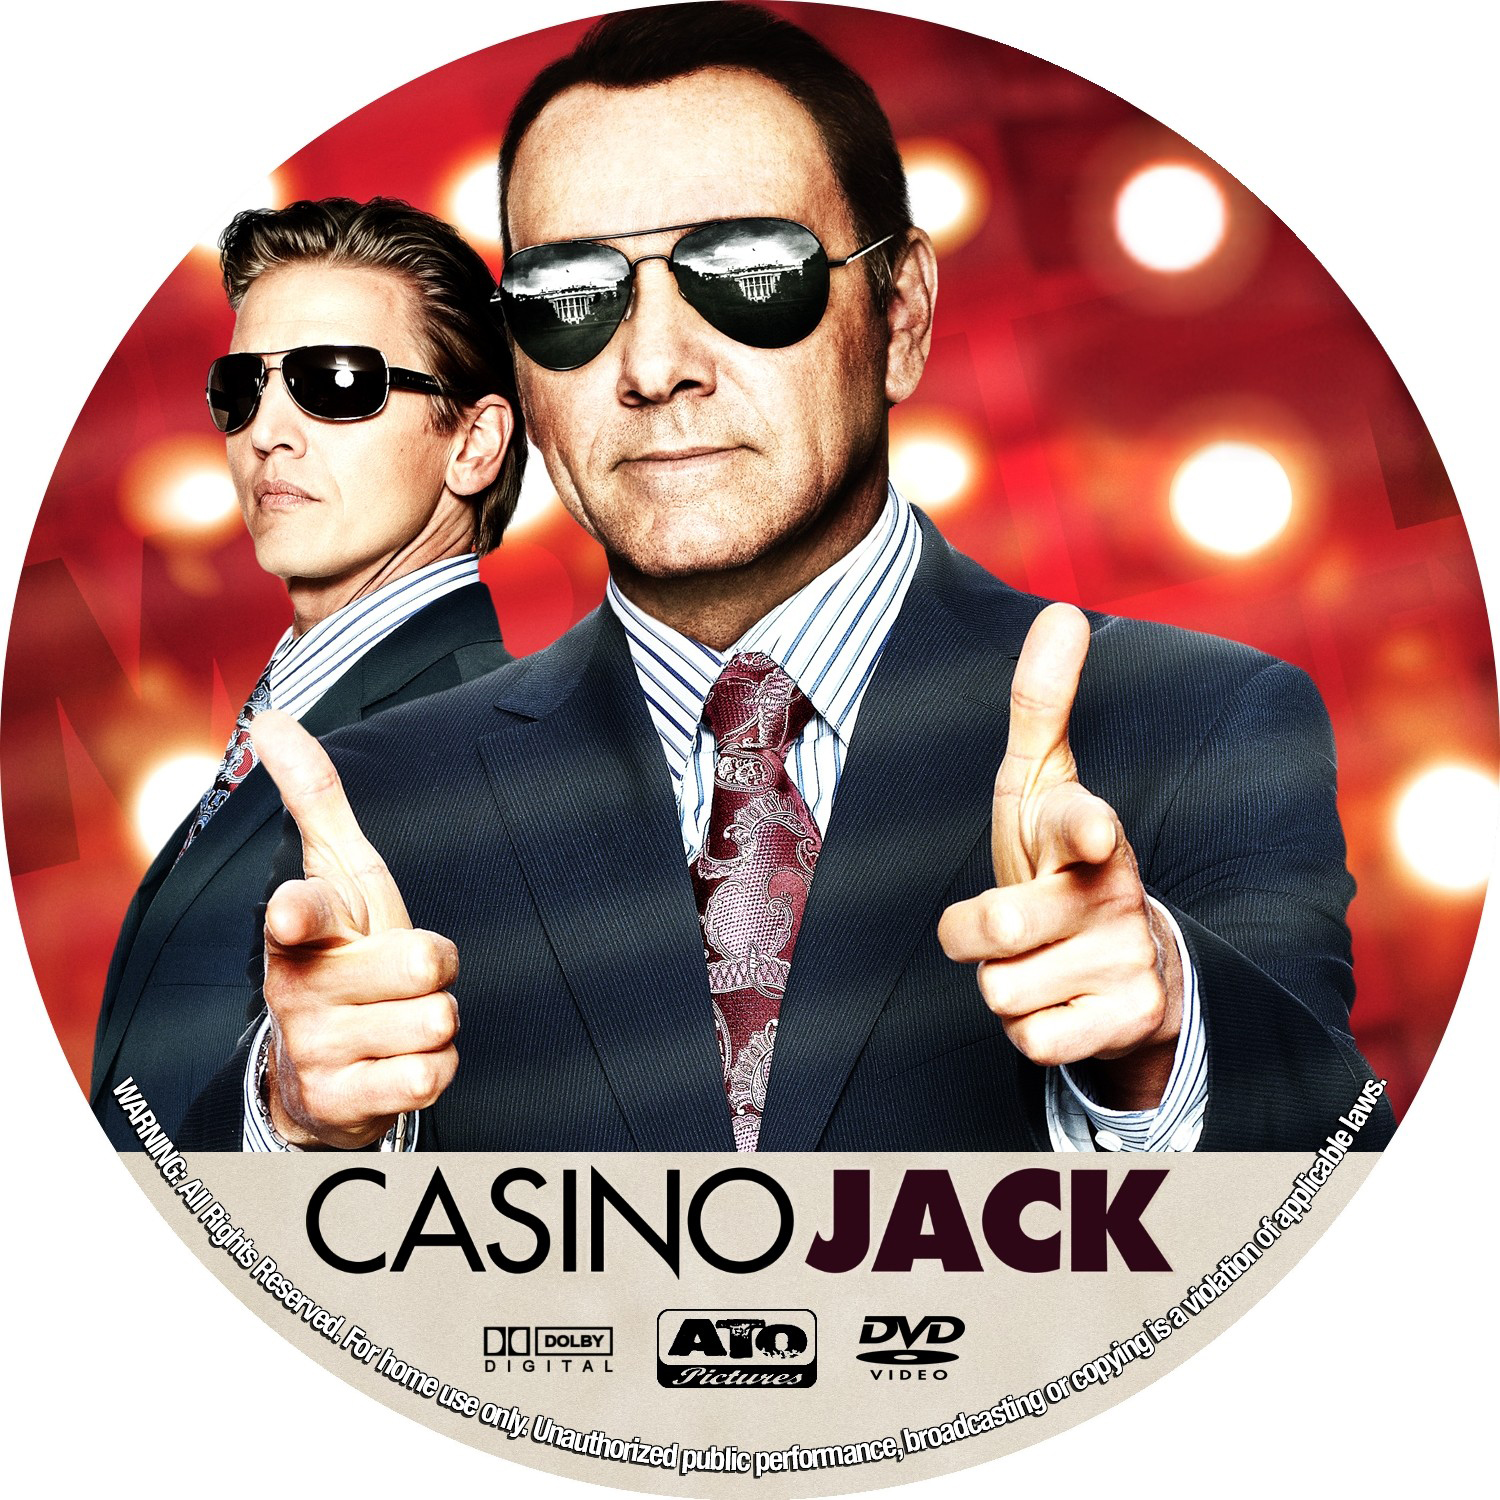 casino jack mirror monologue script